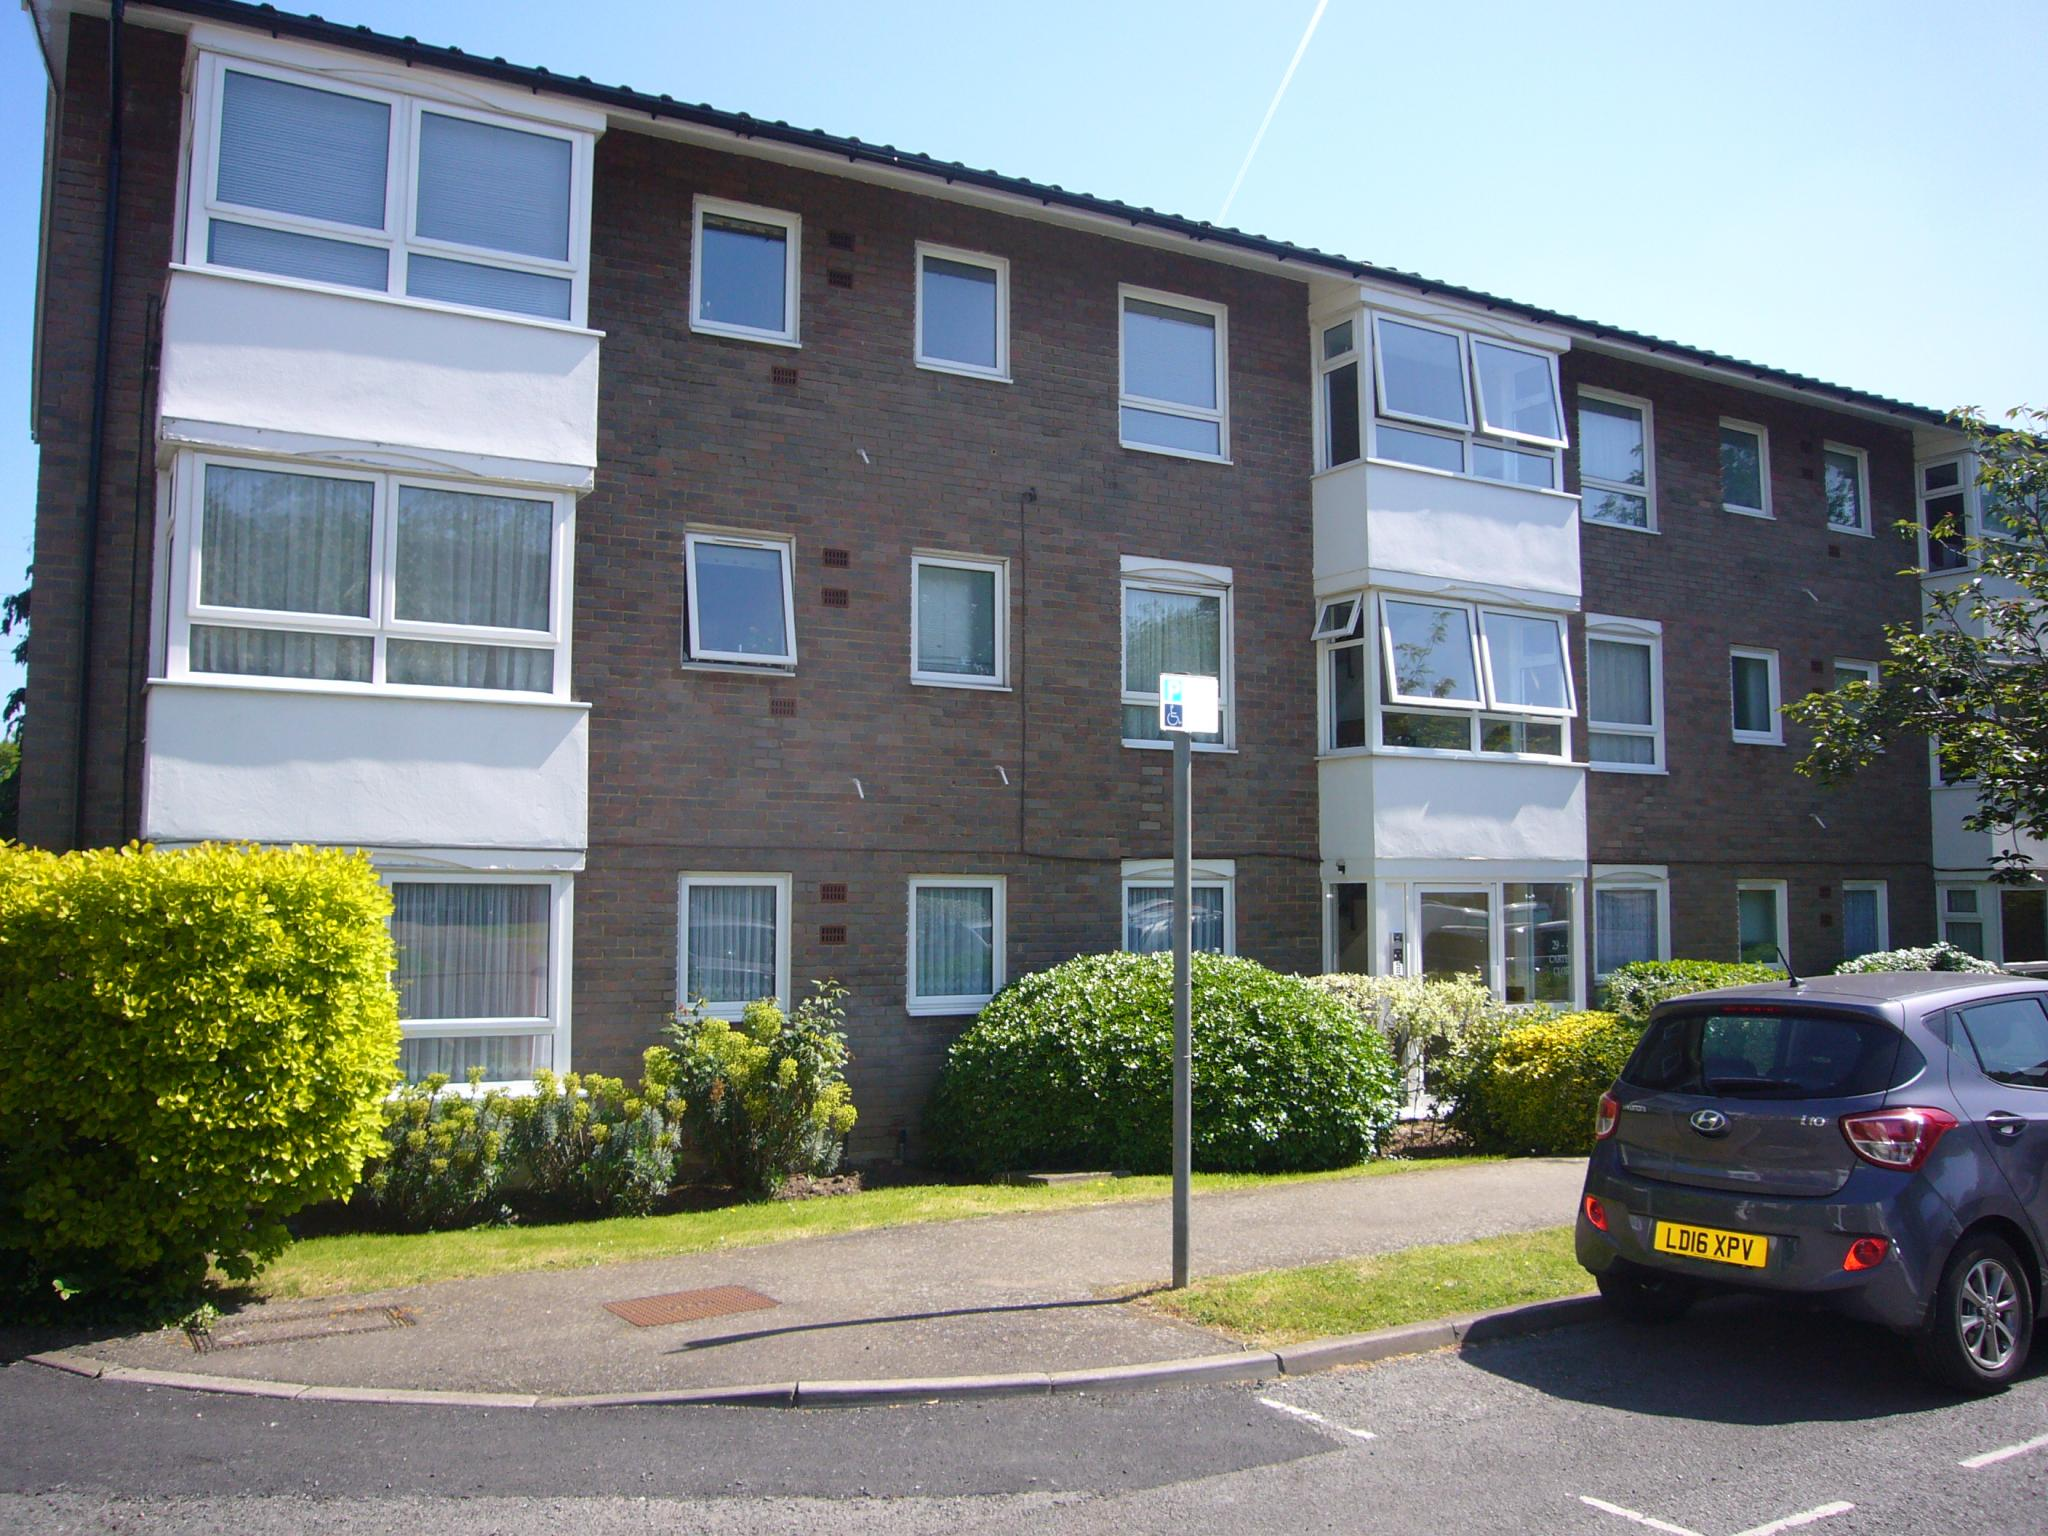 2 bedroom apartment flat/apartment To Let in Worcester Park - Photograph 1.